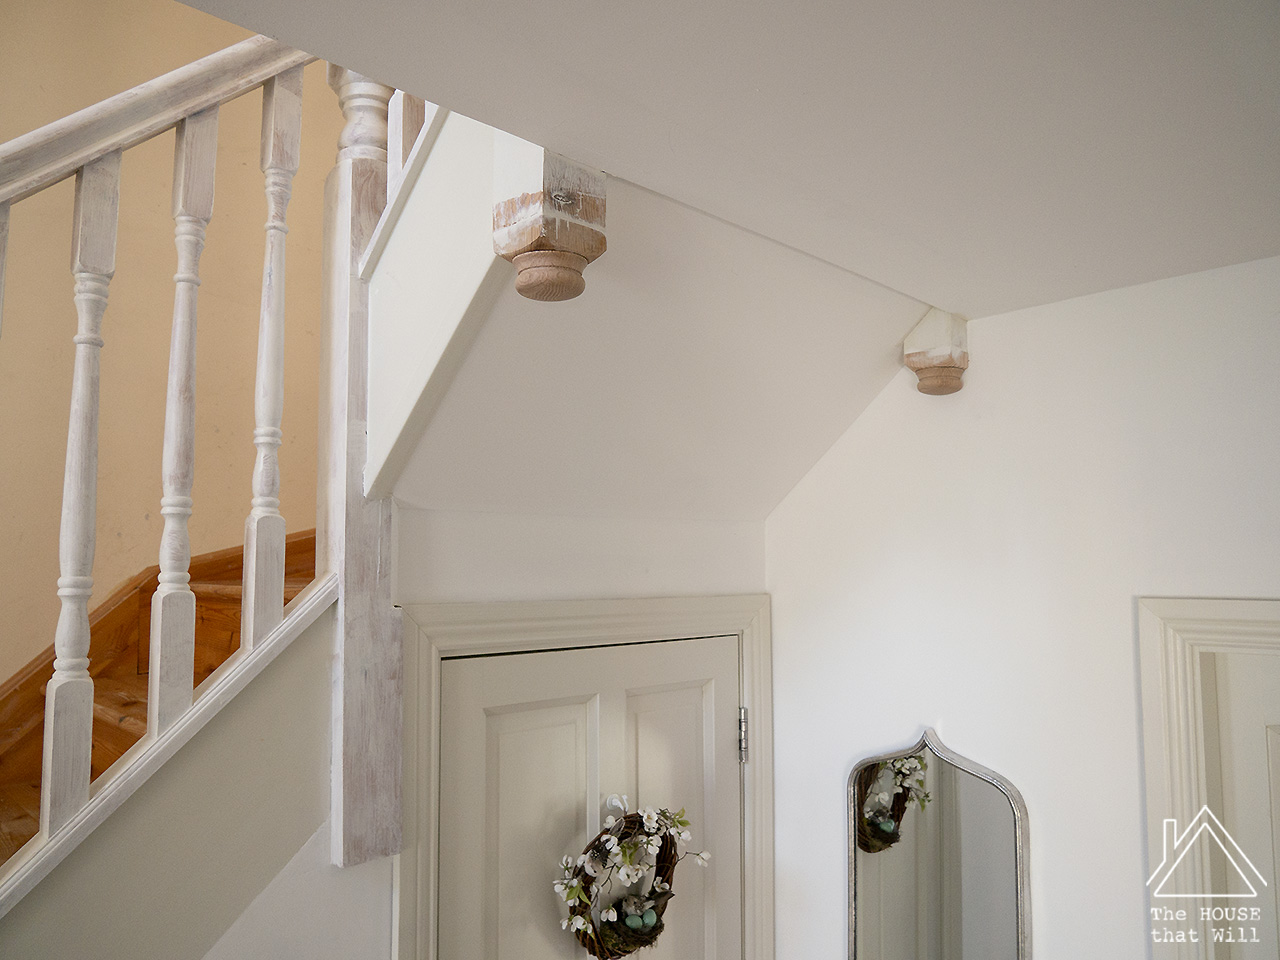 The HOUSE that Will | 7 Ways to Improve an Ugly Staircase